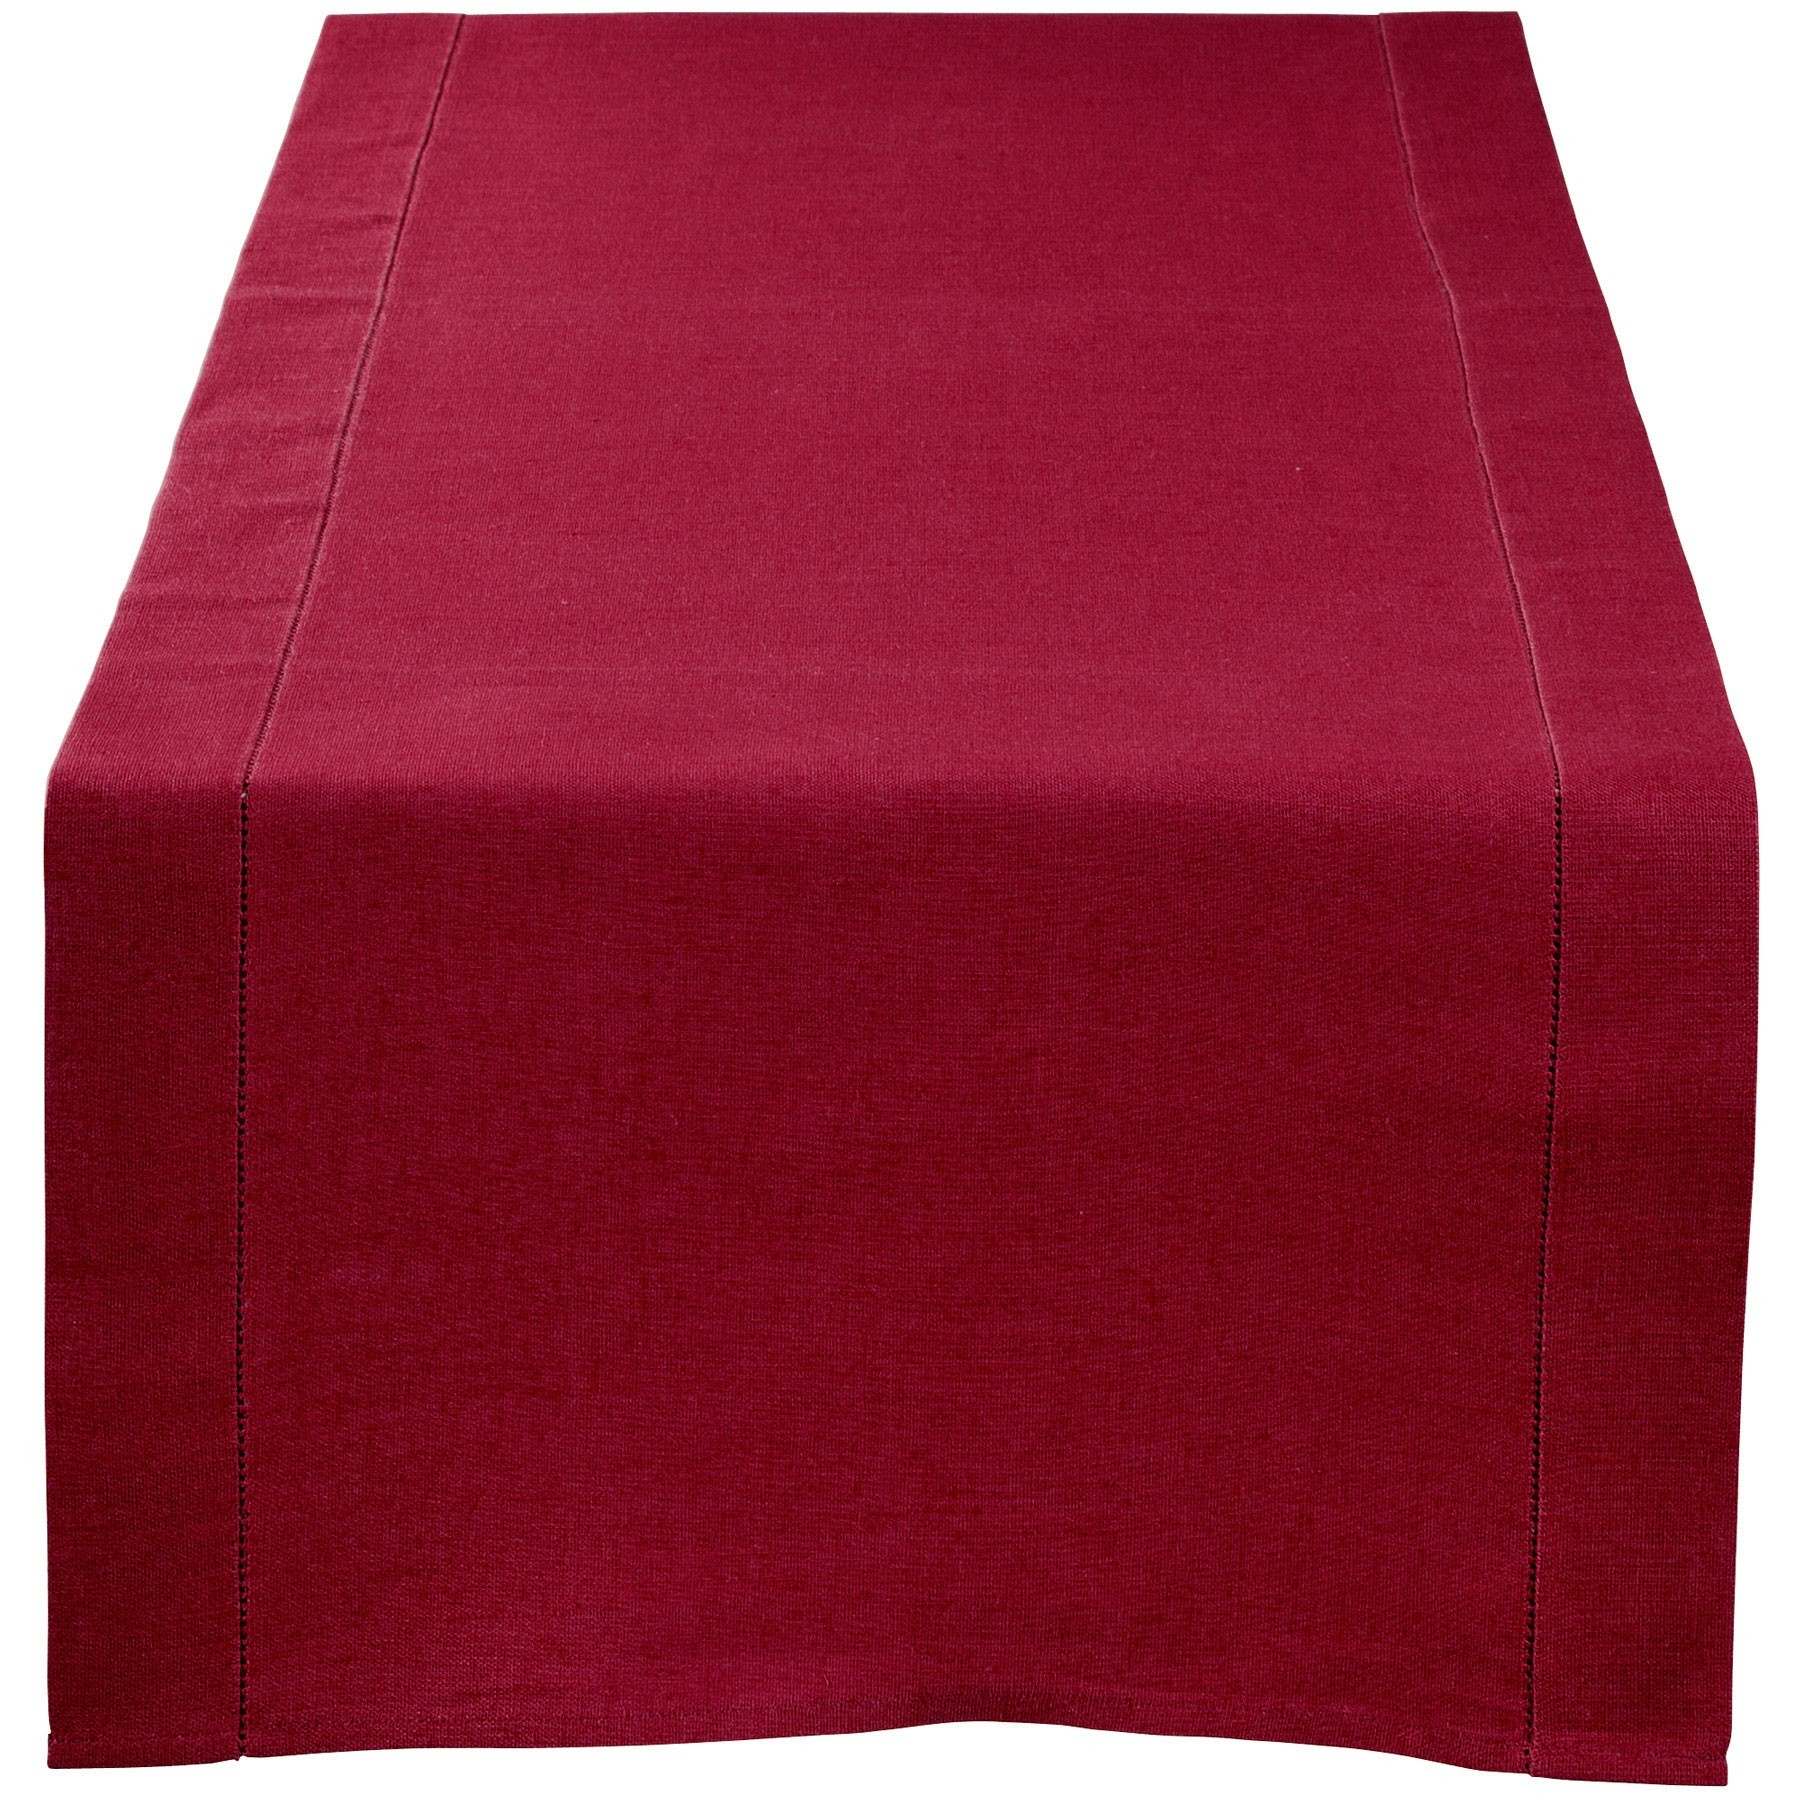 TABLE RUNNER <br />tango red